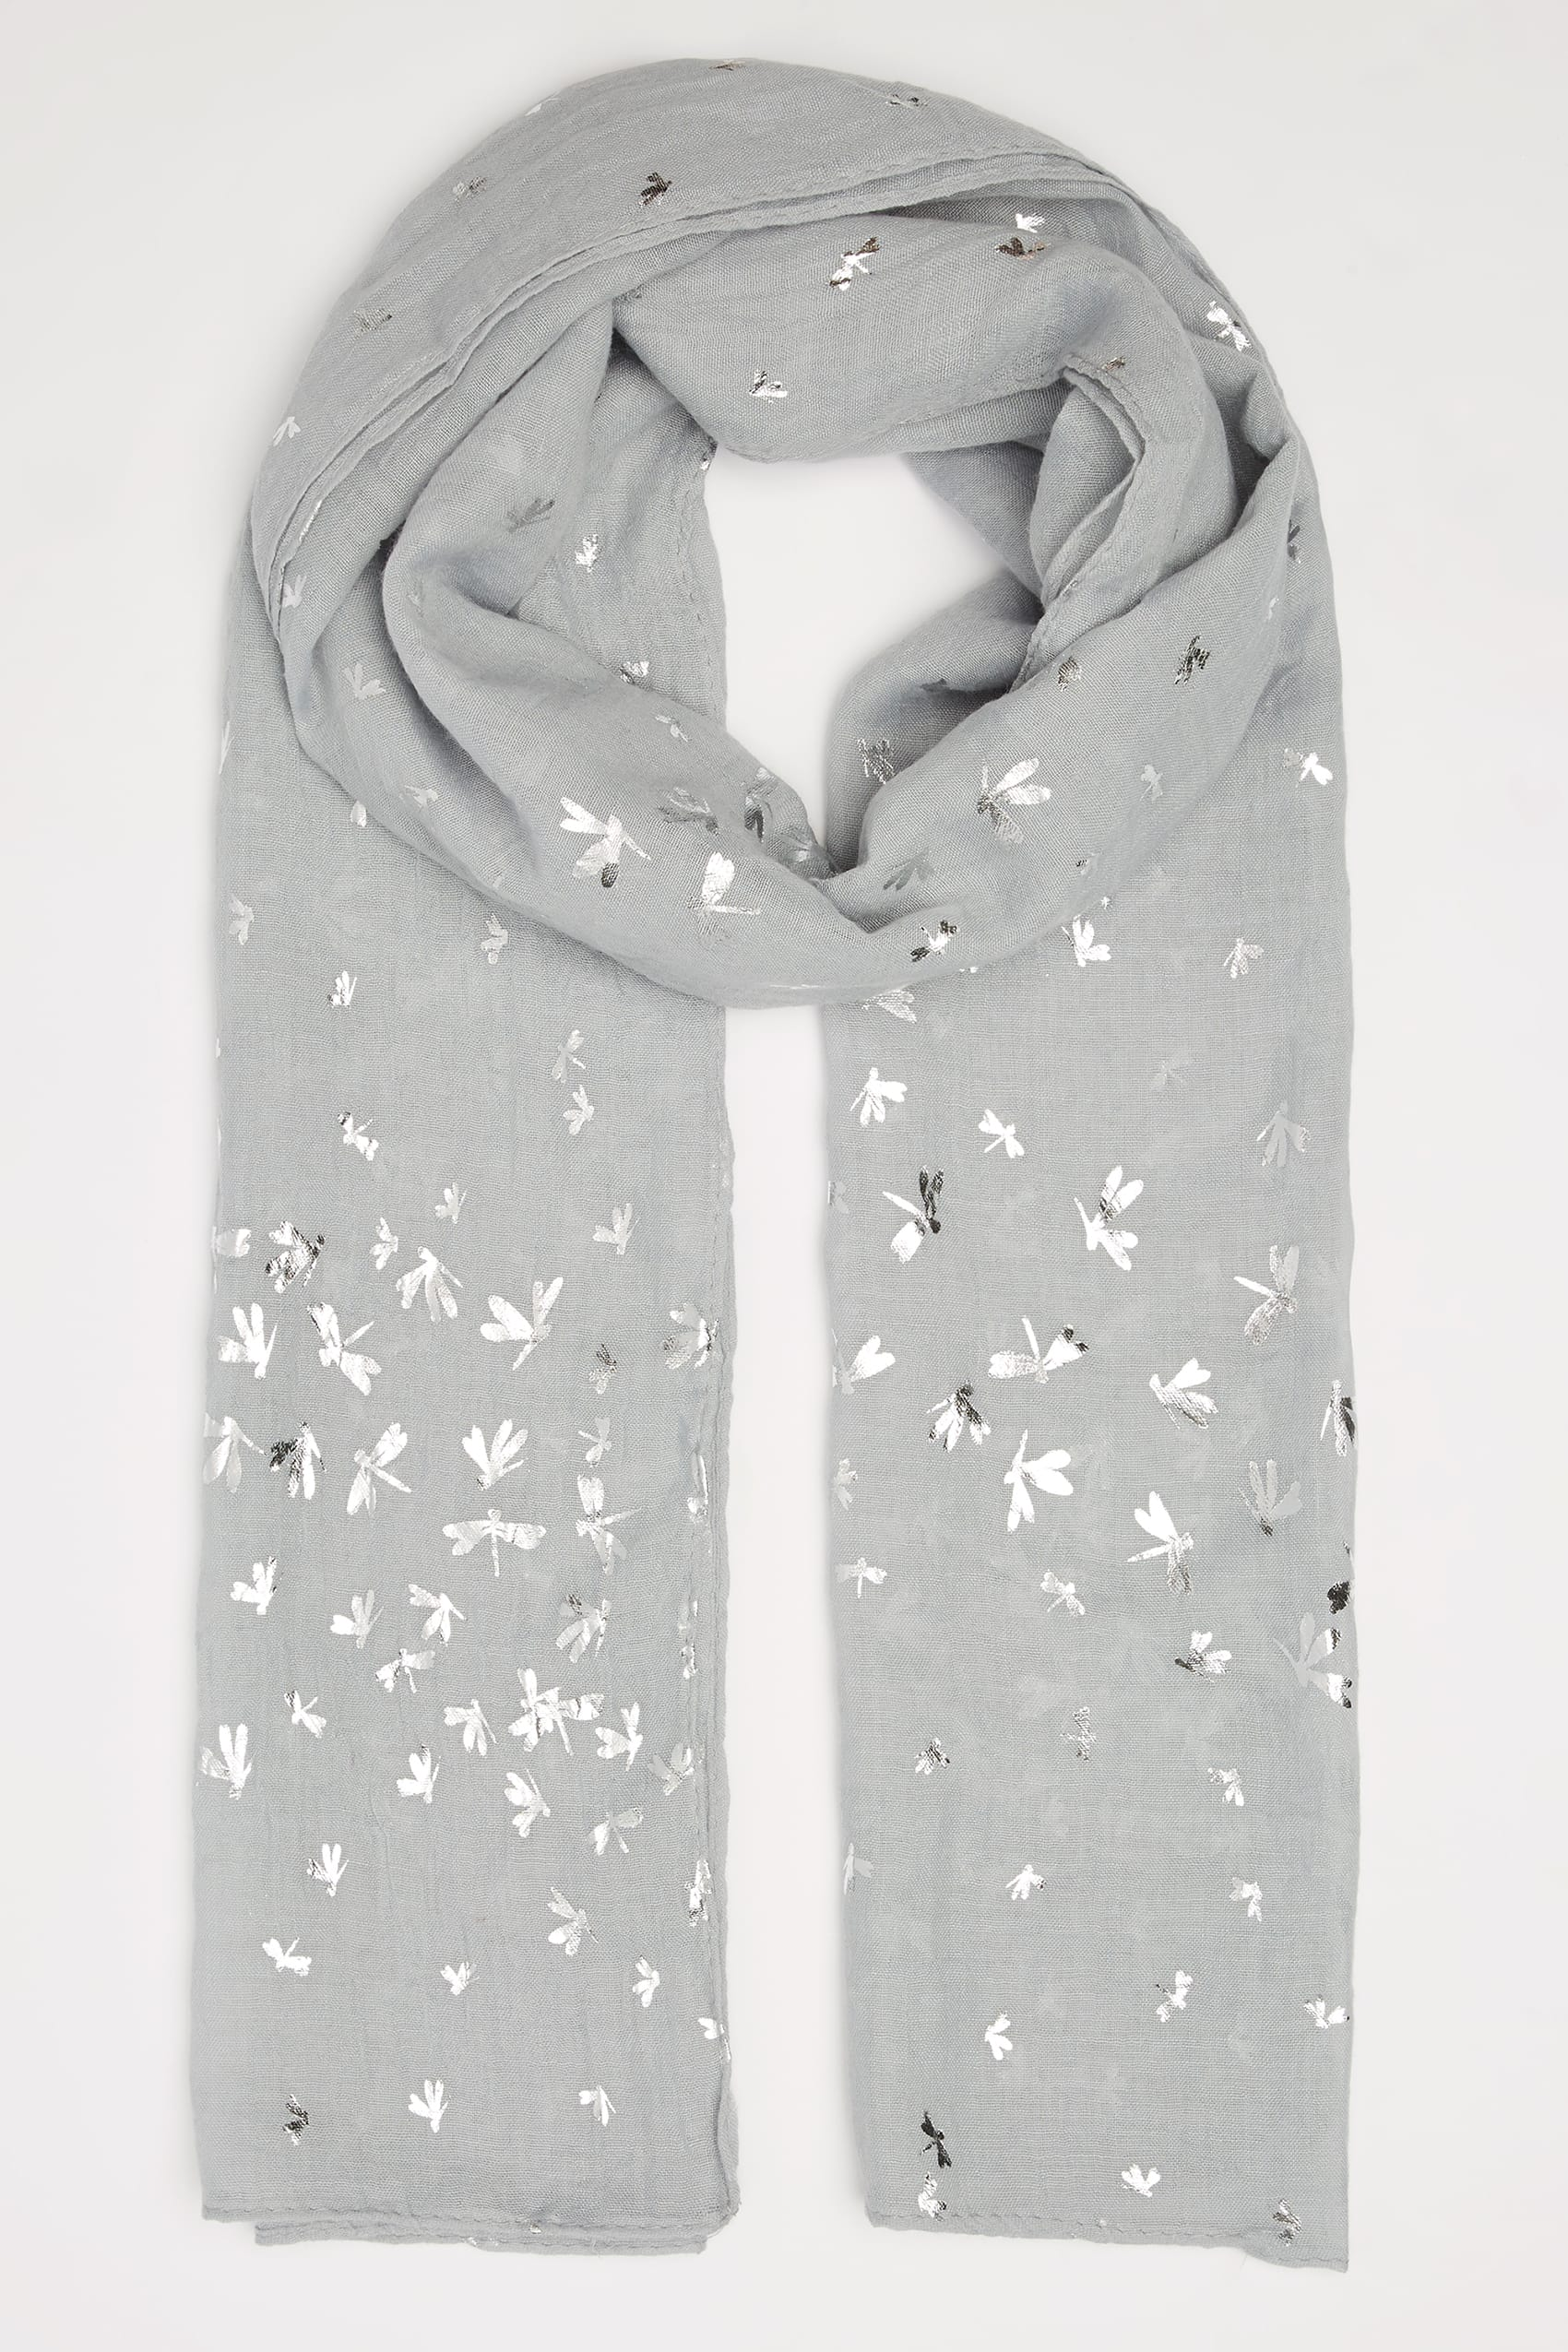 countries with 7 letters in name szary błyszczący szal w ważki 26961 | Grey Foil Print Dragonfly Scarf 152050 2aaf